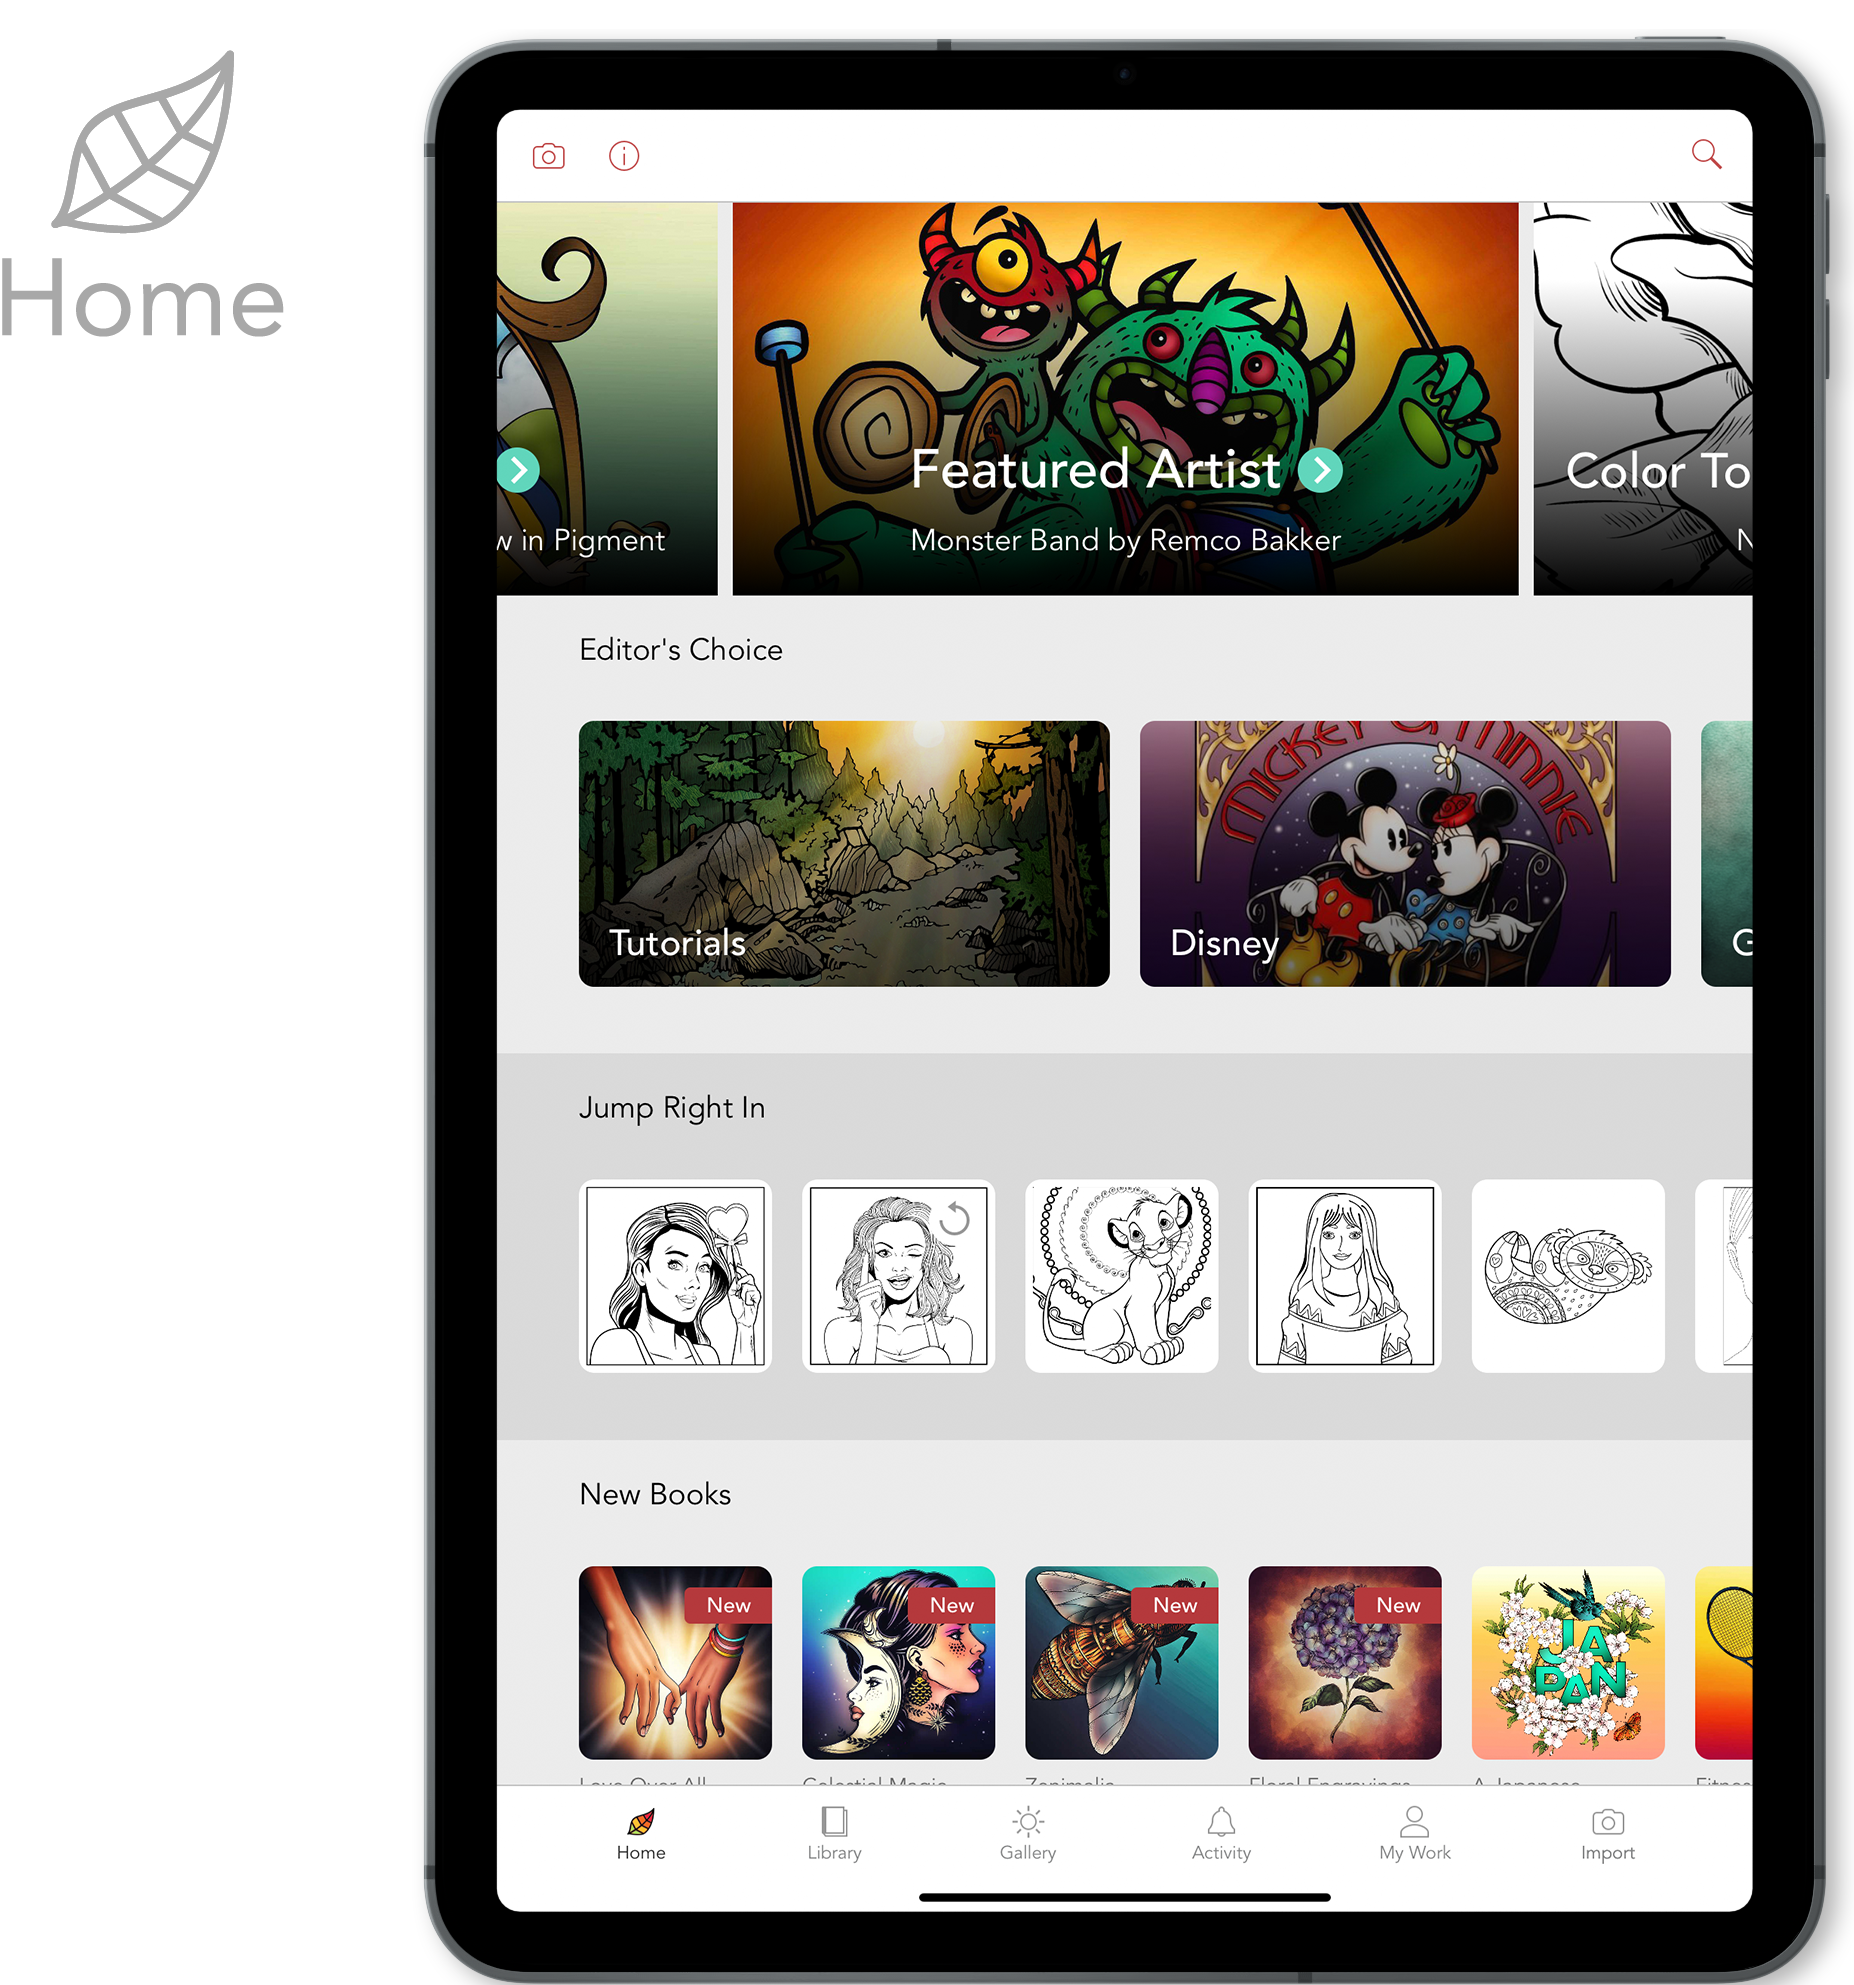 Home Screen - In the Home Screen you will be presented with the New Books and the curated Editor's Choice categories. You will also find a selection of pages to get started coloring quickly.